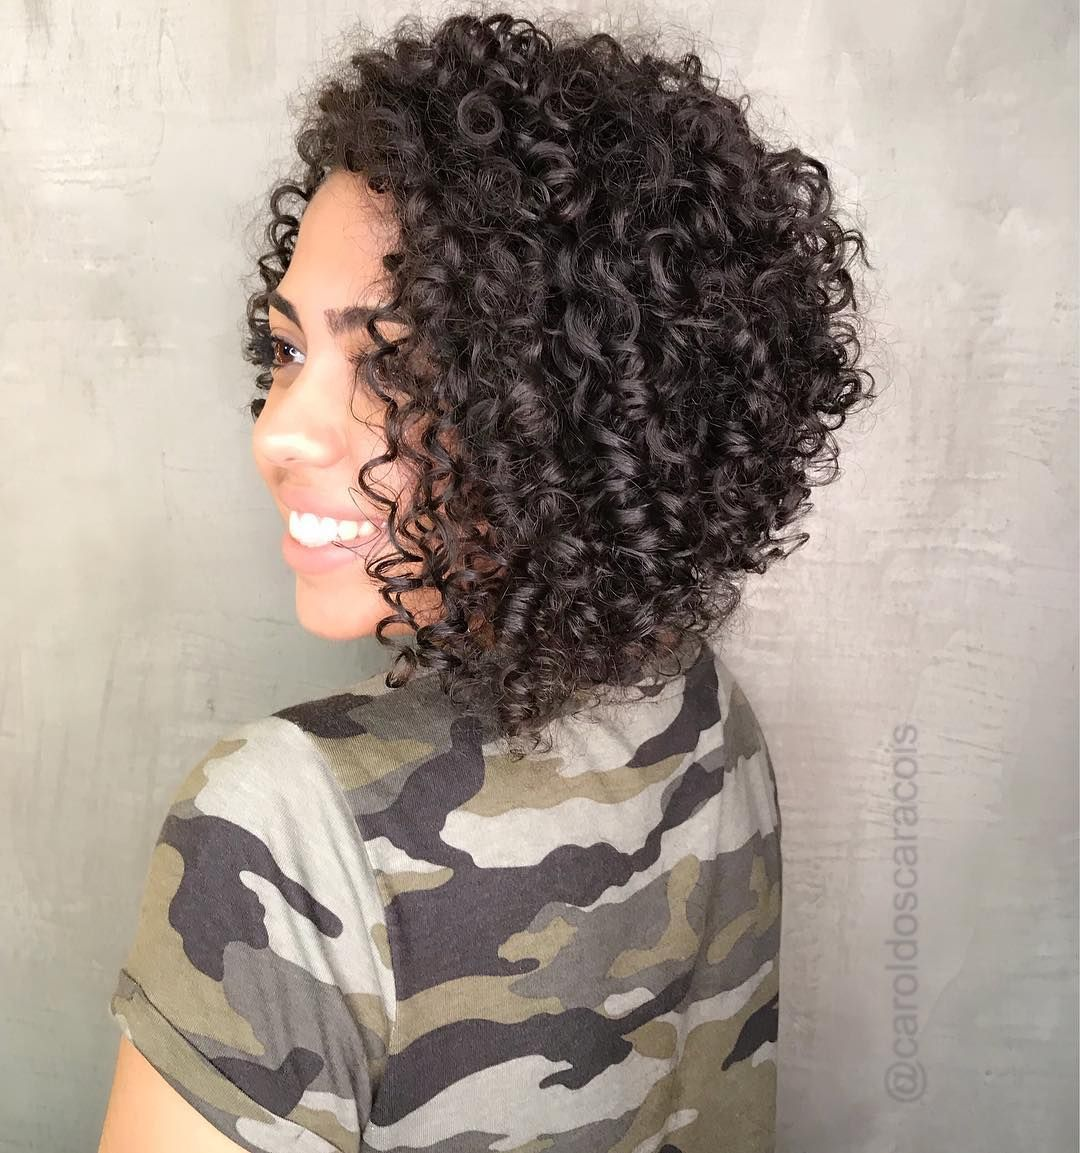 65 Different Versions of Curly Bob Hairstyle | Curly bob hairstyles, Curly hair styles naturally ...